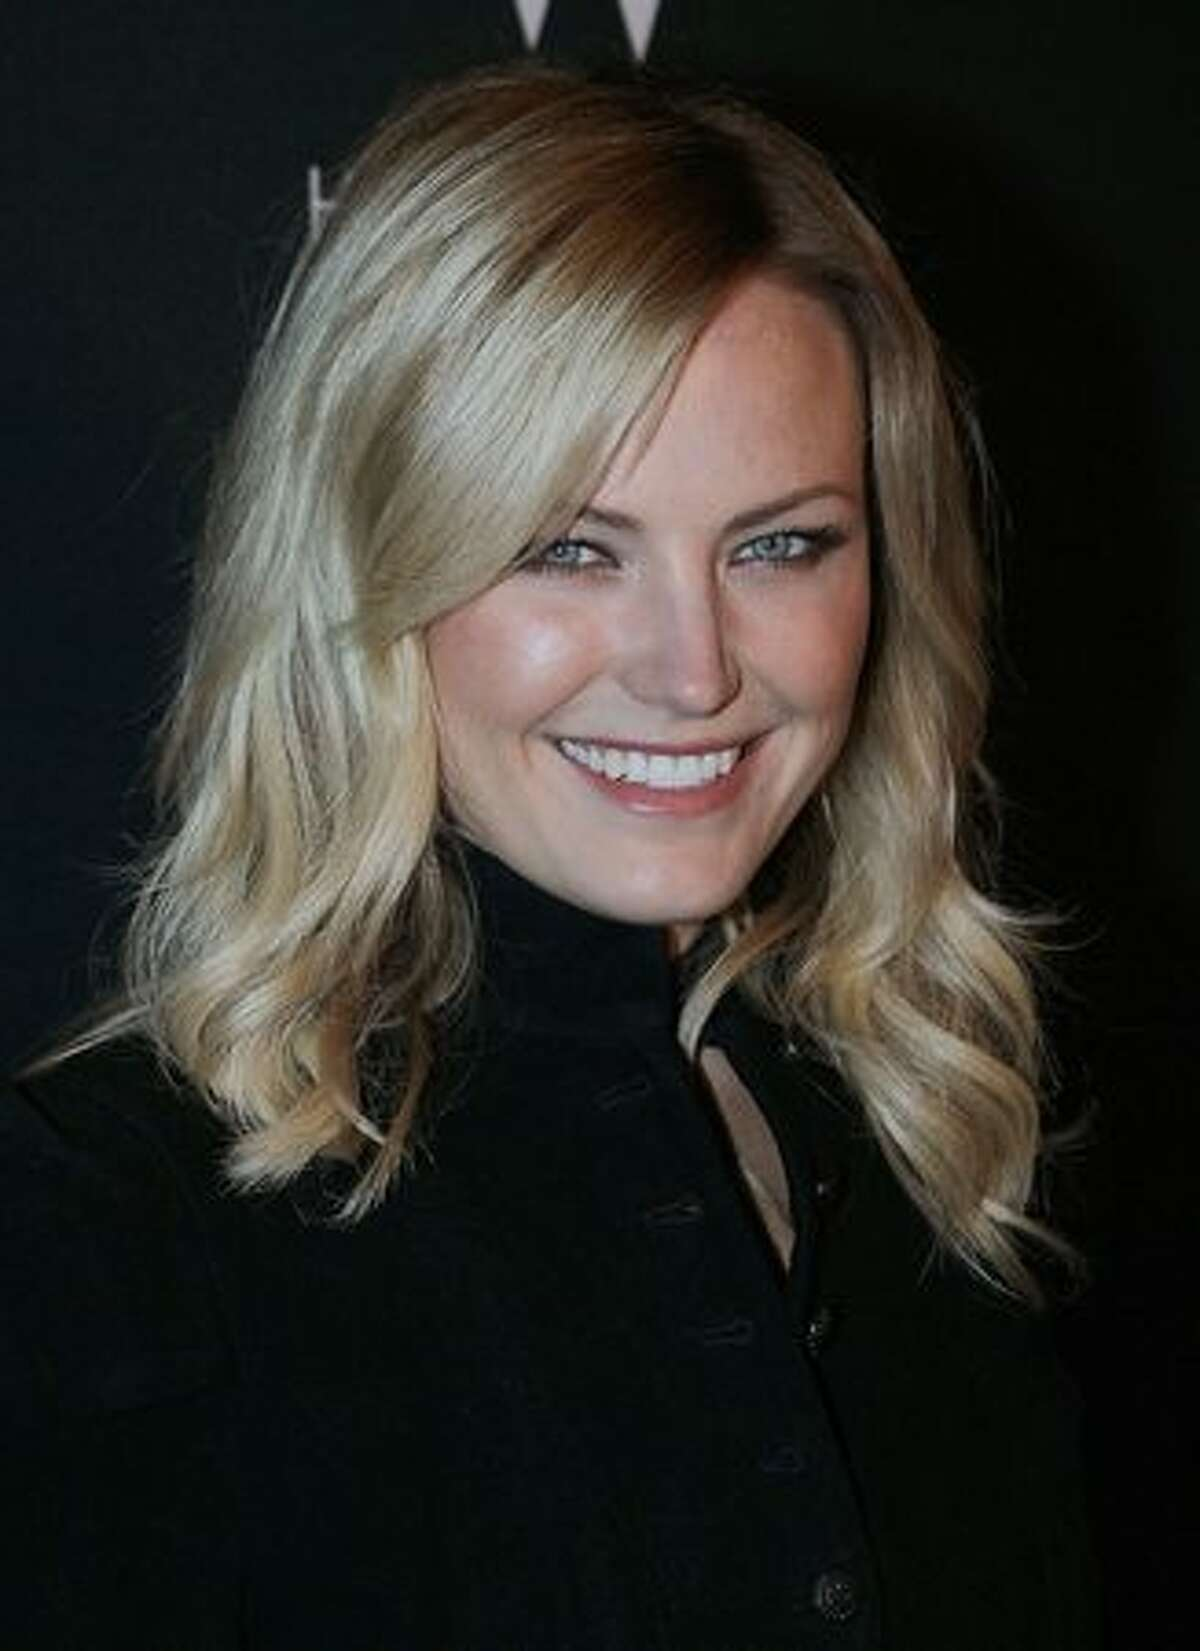 Actress Malin Akerman attends the 2011 Tribeca Film Festival Kick-Off party at the W Hollywood in Hollywood, California.